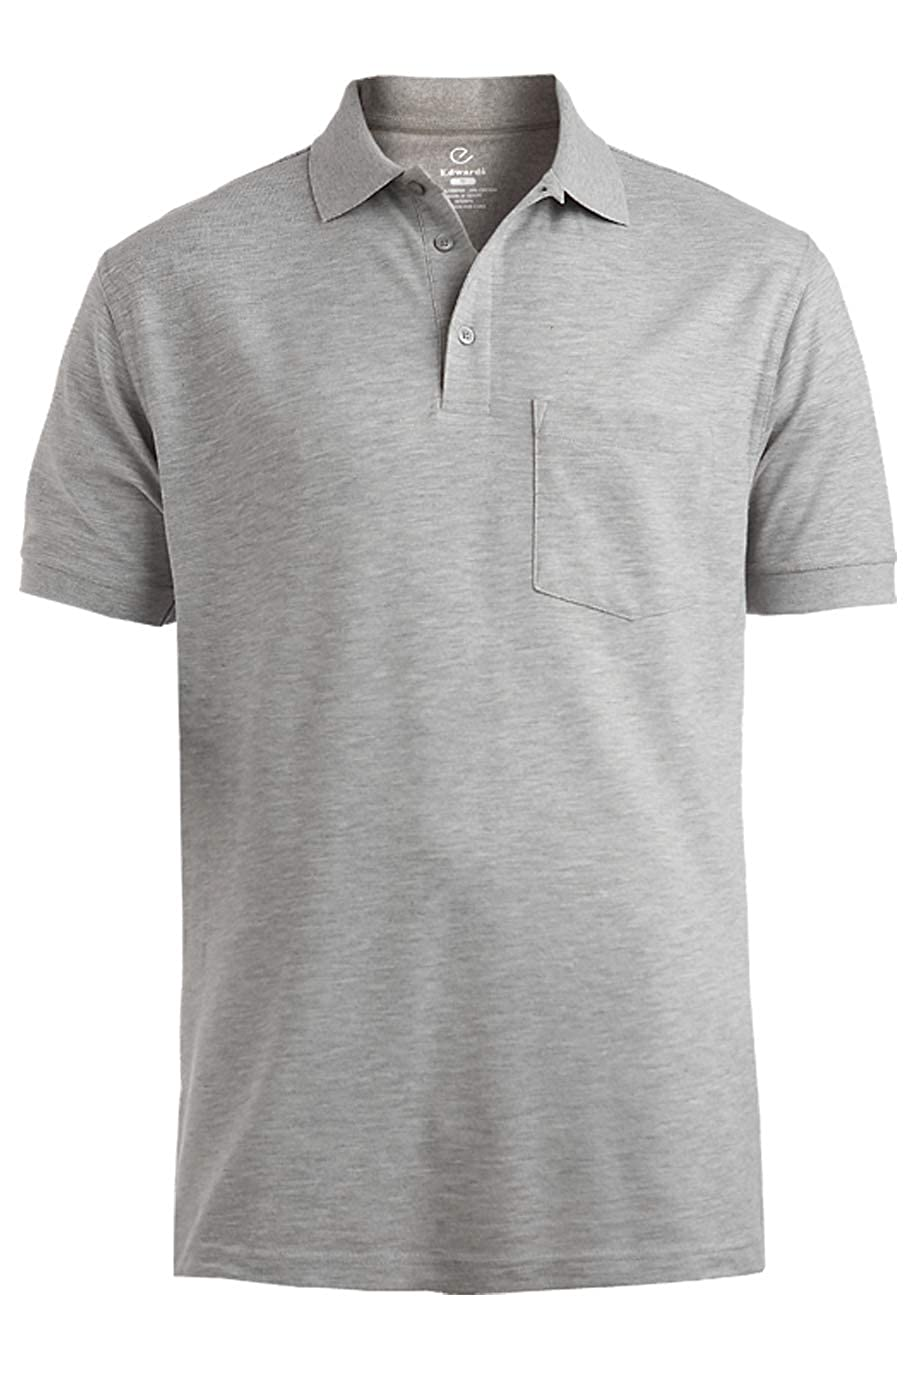 Edwards Blended Pique Short Sleeve Polo with Pocket